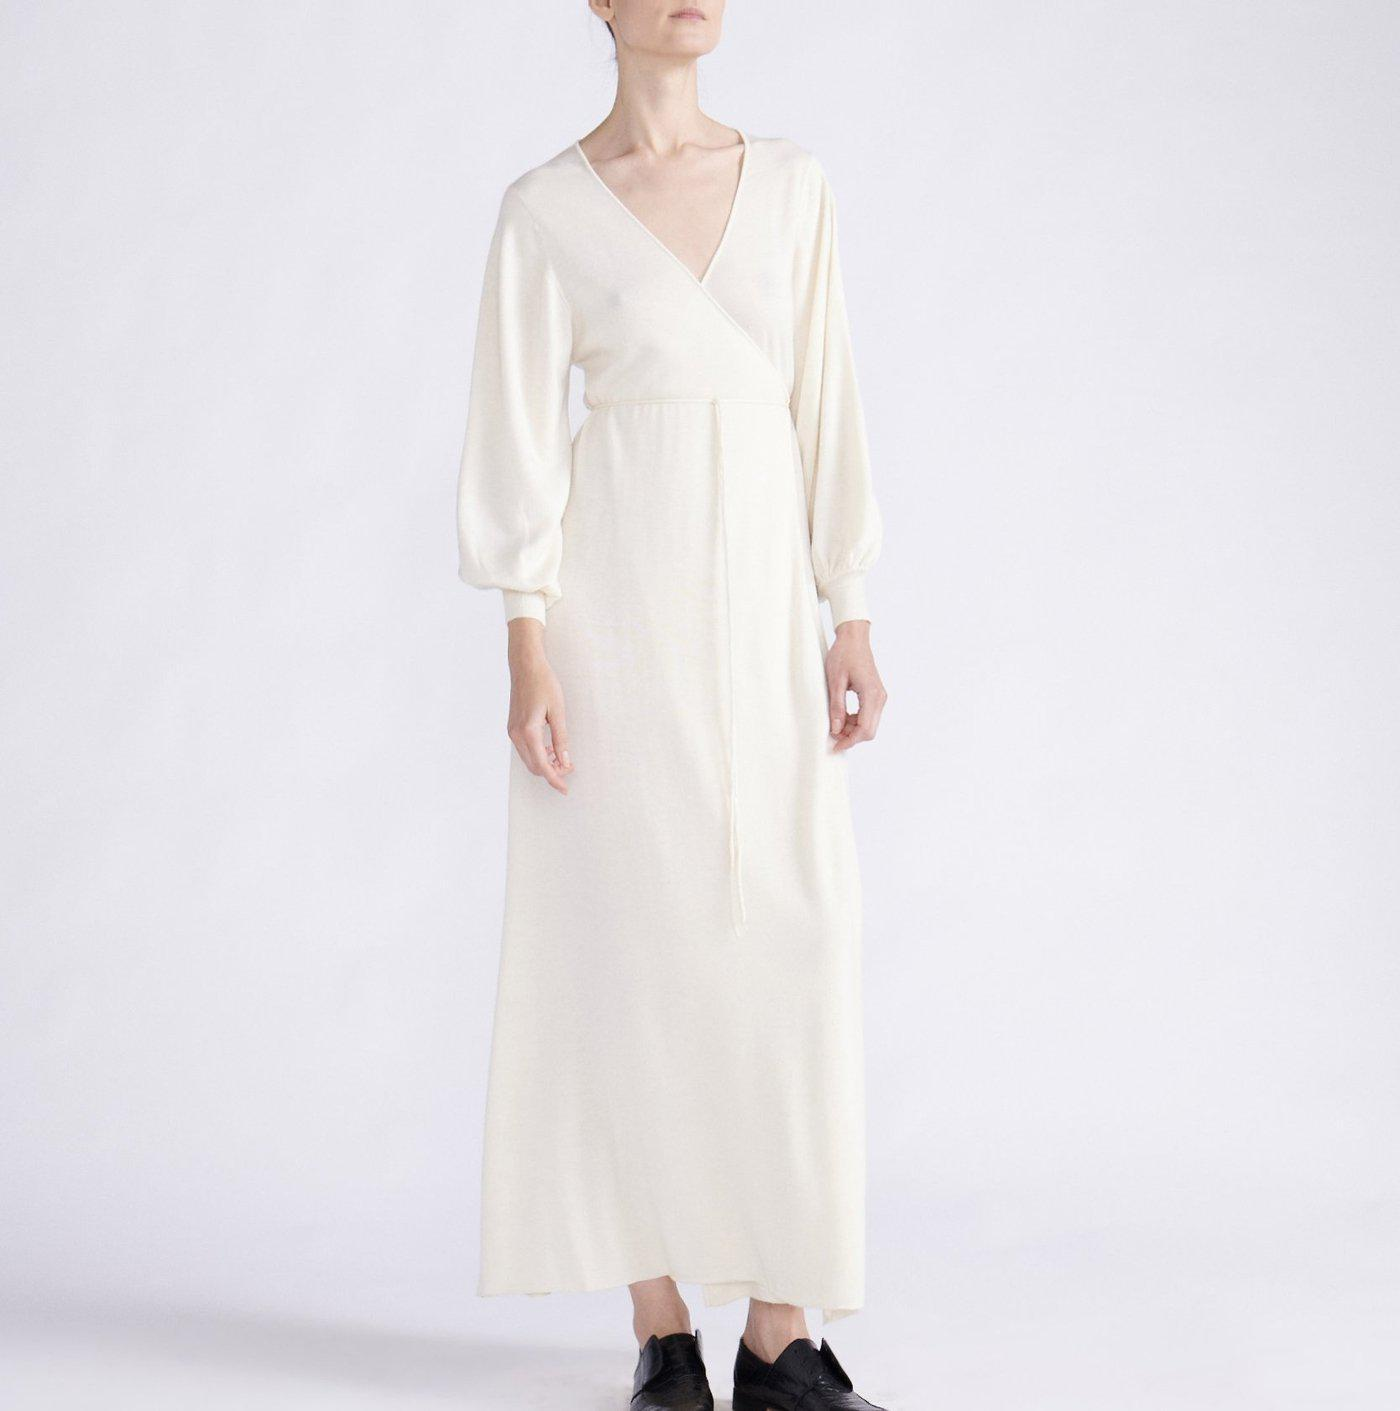 RYAN ROCHE CASHMERE MAXI WRAP DRESS WITH BALLOON SLEEVES